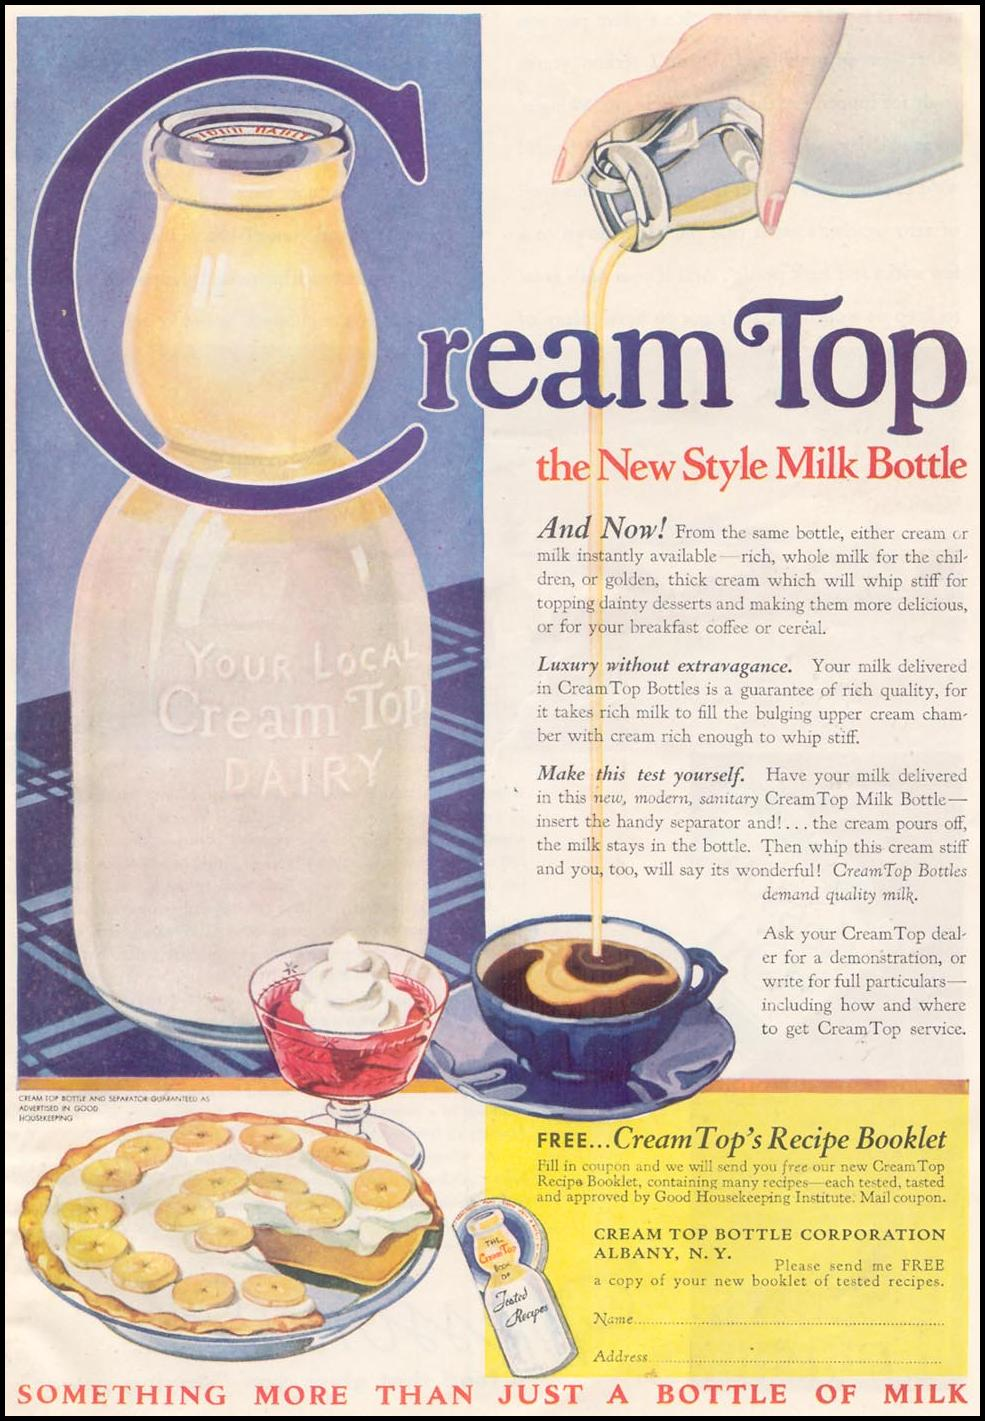 CREAM TOP MILK BOTTLES GOOD HOUSEKEEPING 03/01/1935